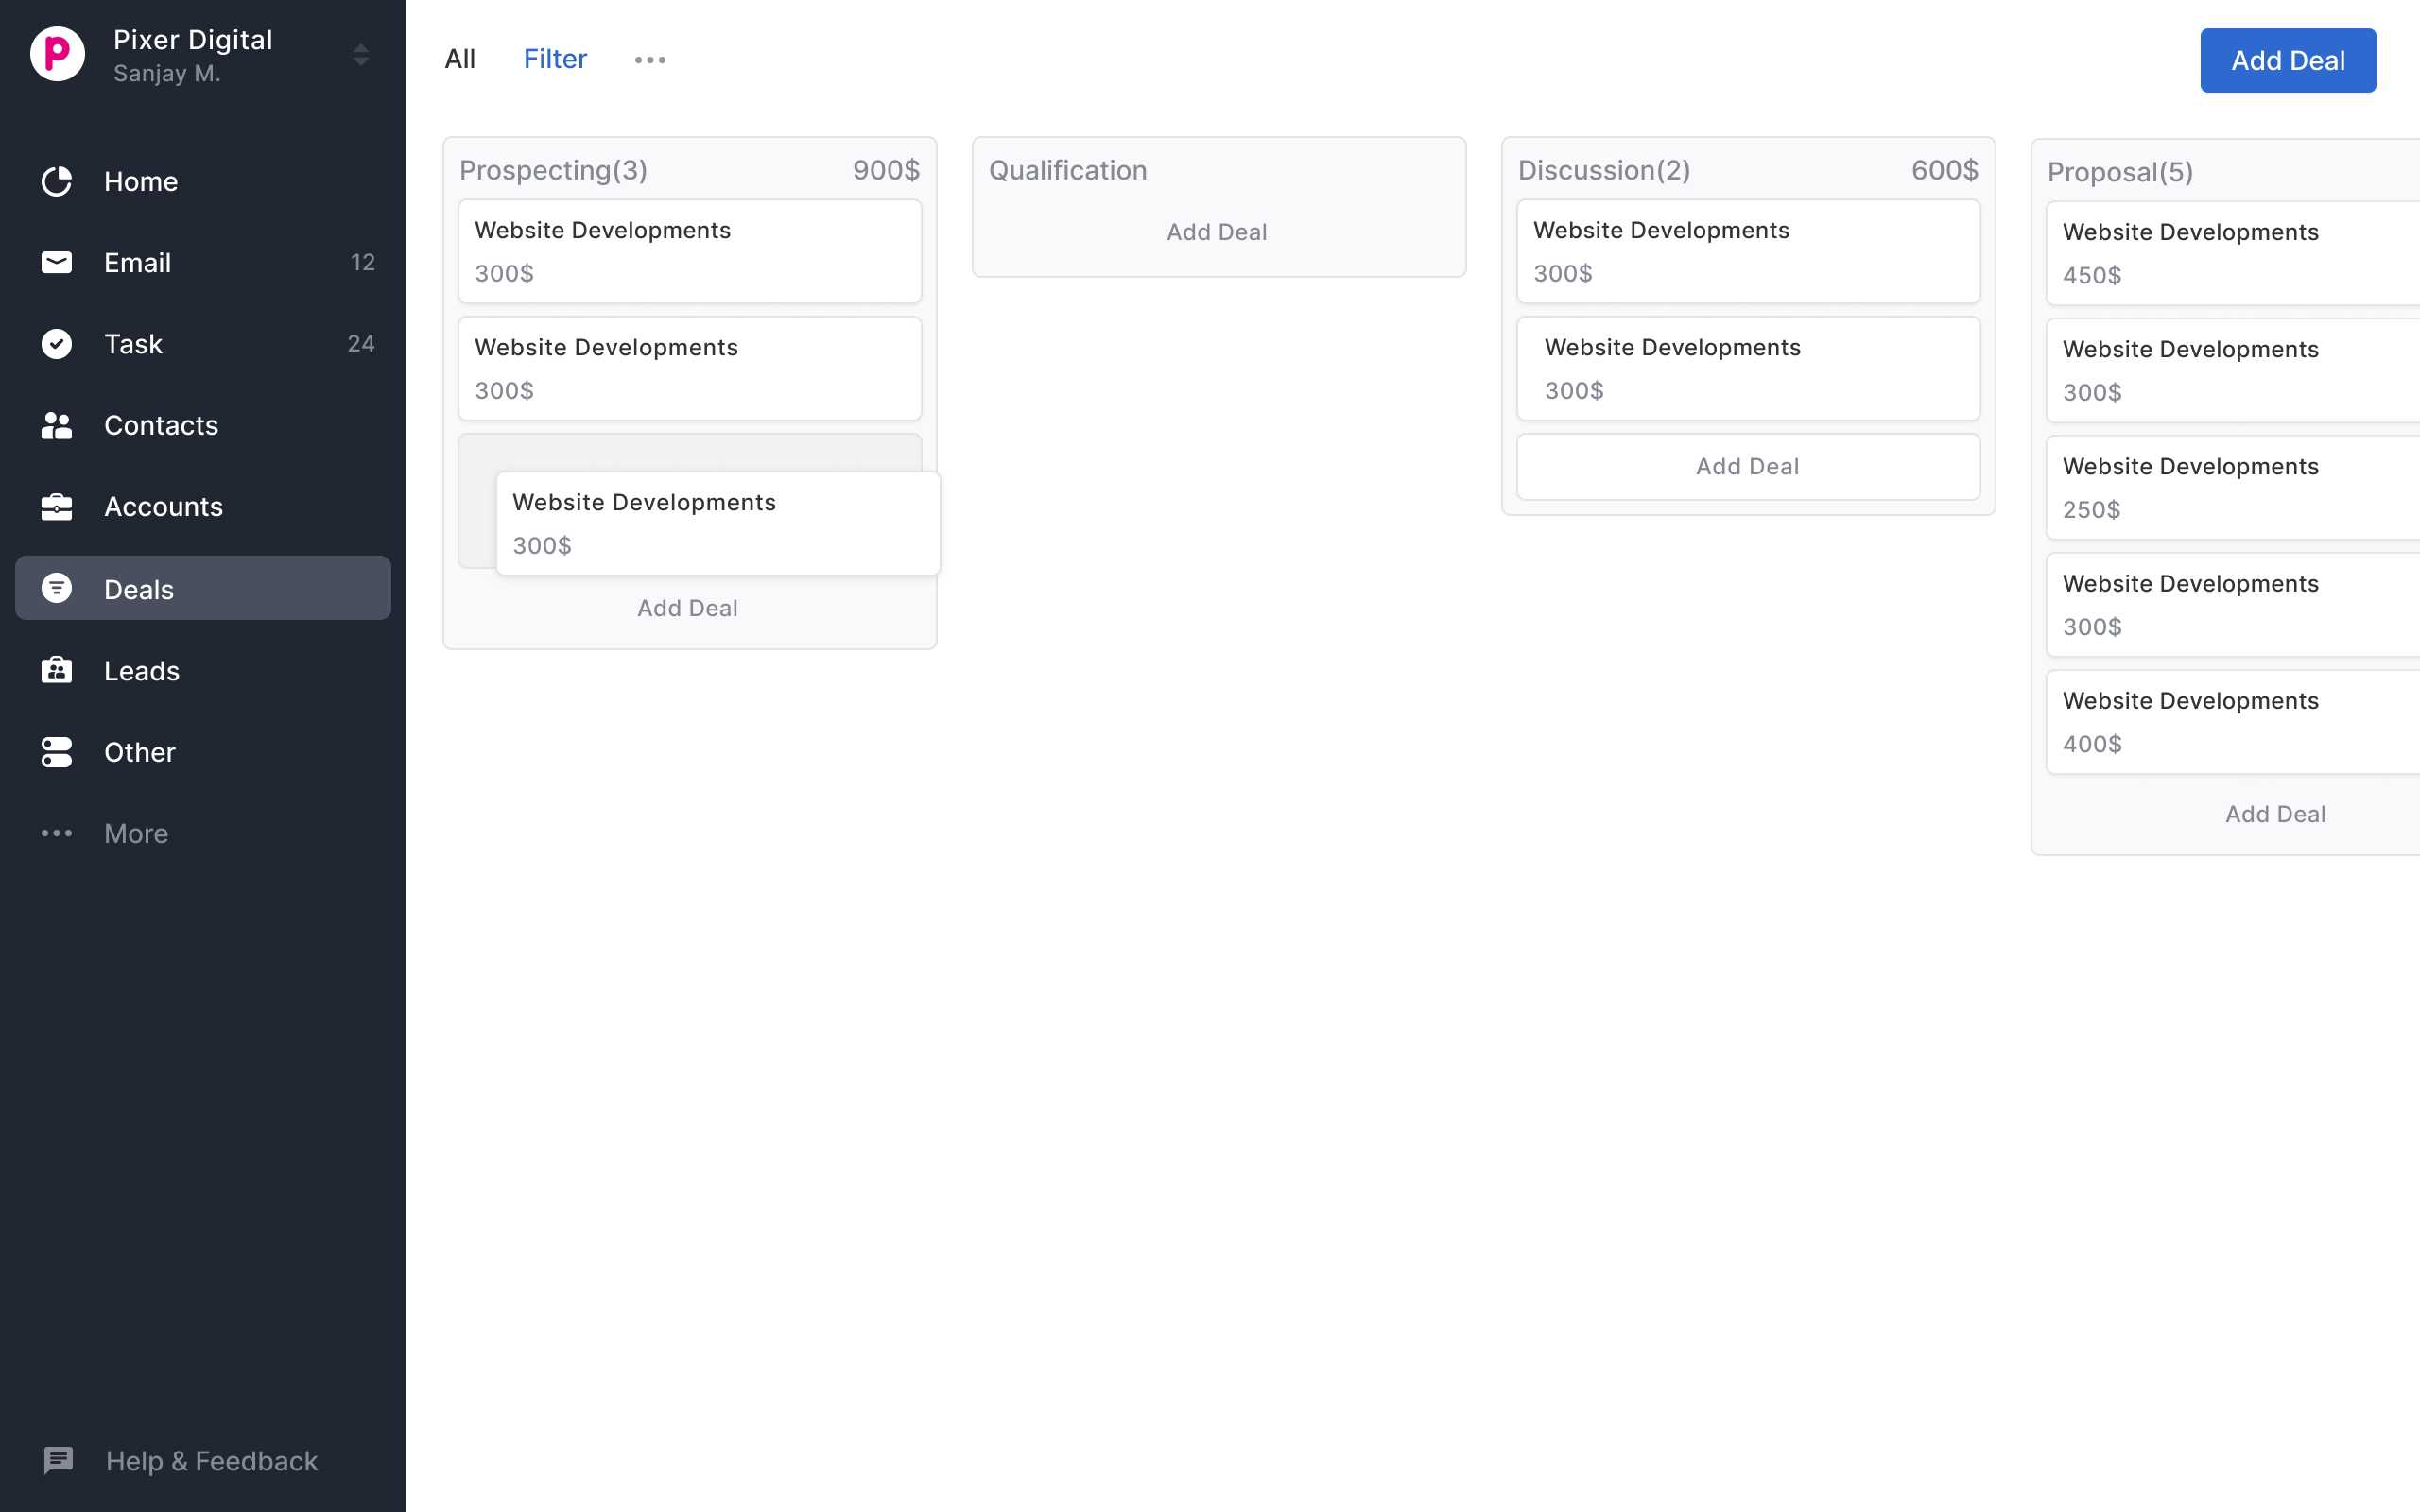 New kanban view for deal